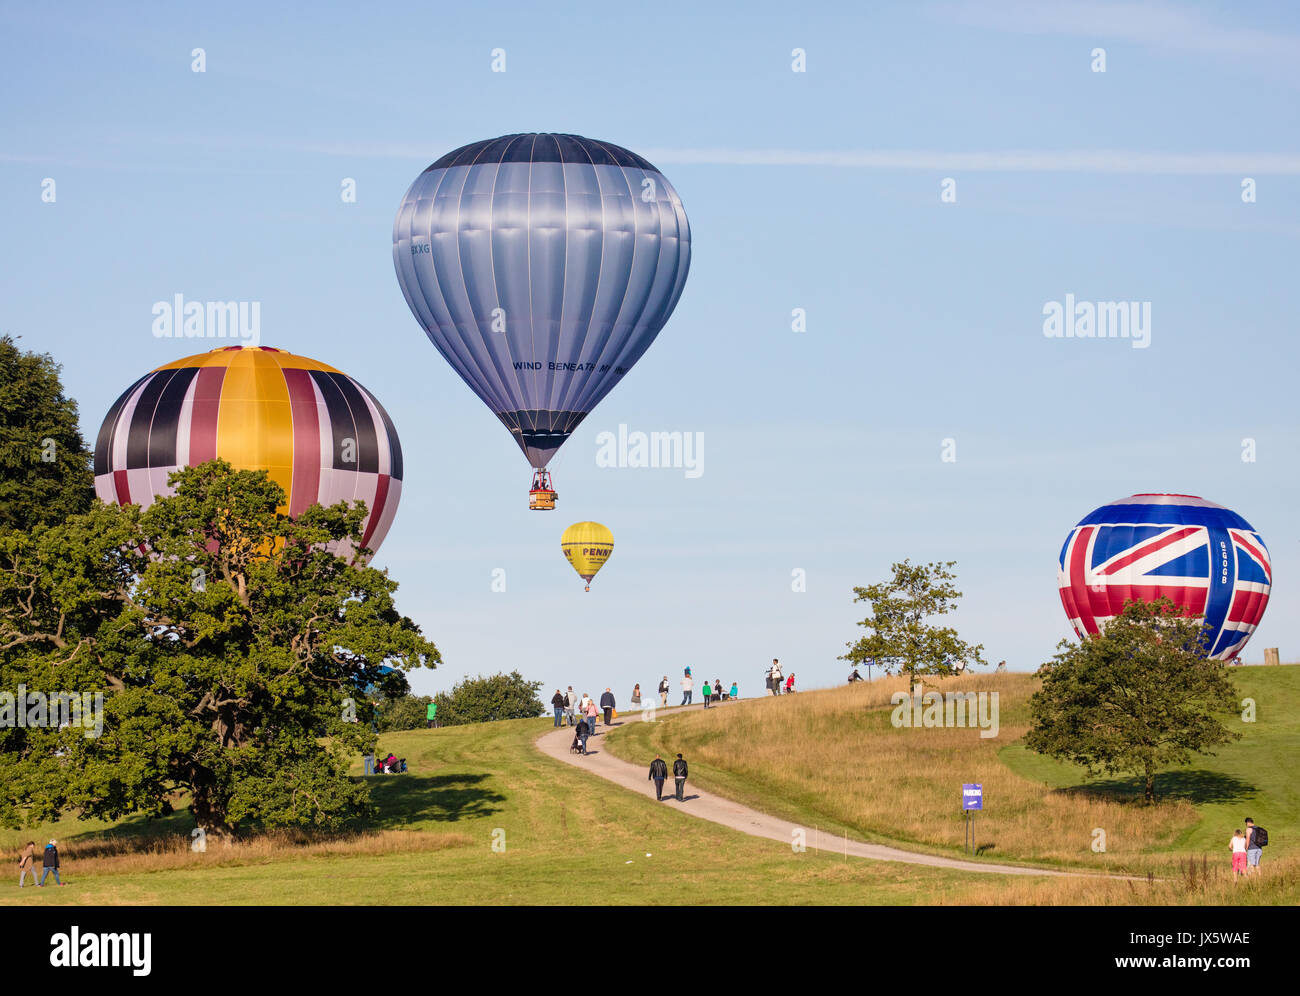 Hot air balloons landing at Ashton Court Somerset after mass ascent from the launch site during the 2017 Bristol Balloon Fiesta Stock Photo